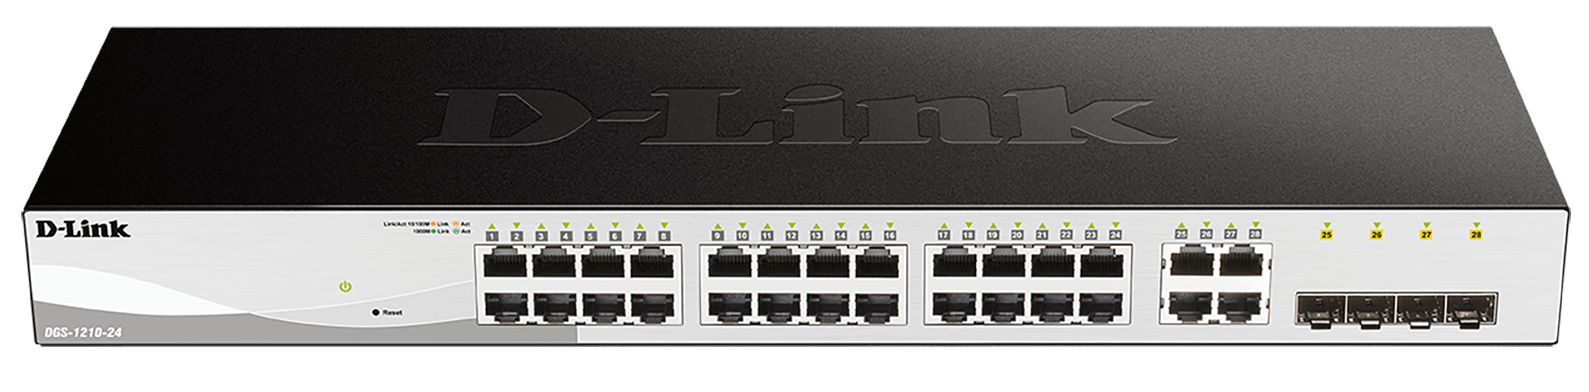 24-Port Gigabit Smart Managed Switch with 4 combo 1000BASE-T/SFP ports (fanless)